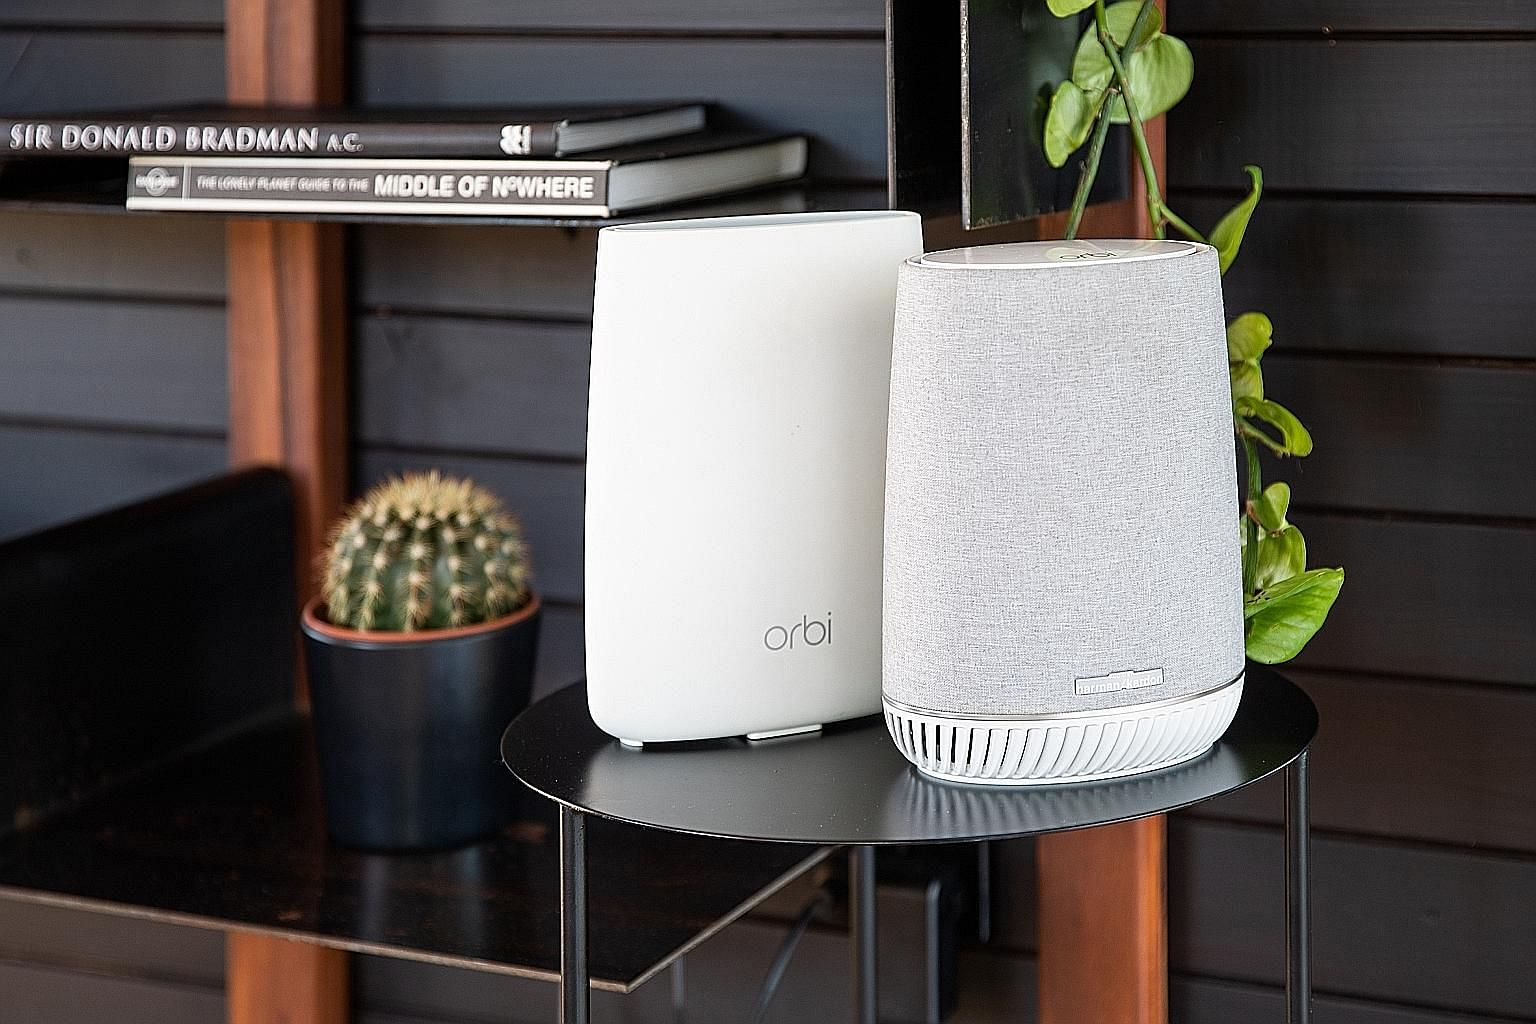 The Orbi Voice kit includes an Orbi router and an Orbi Voice speaker.